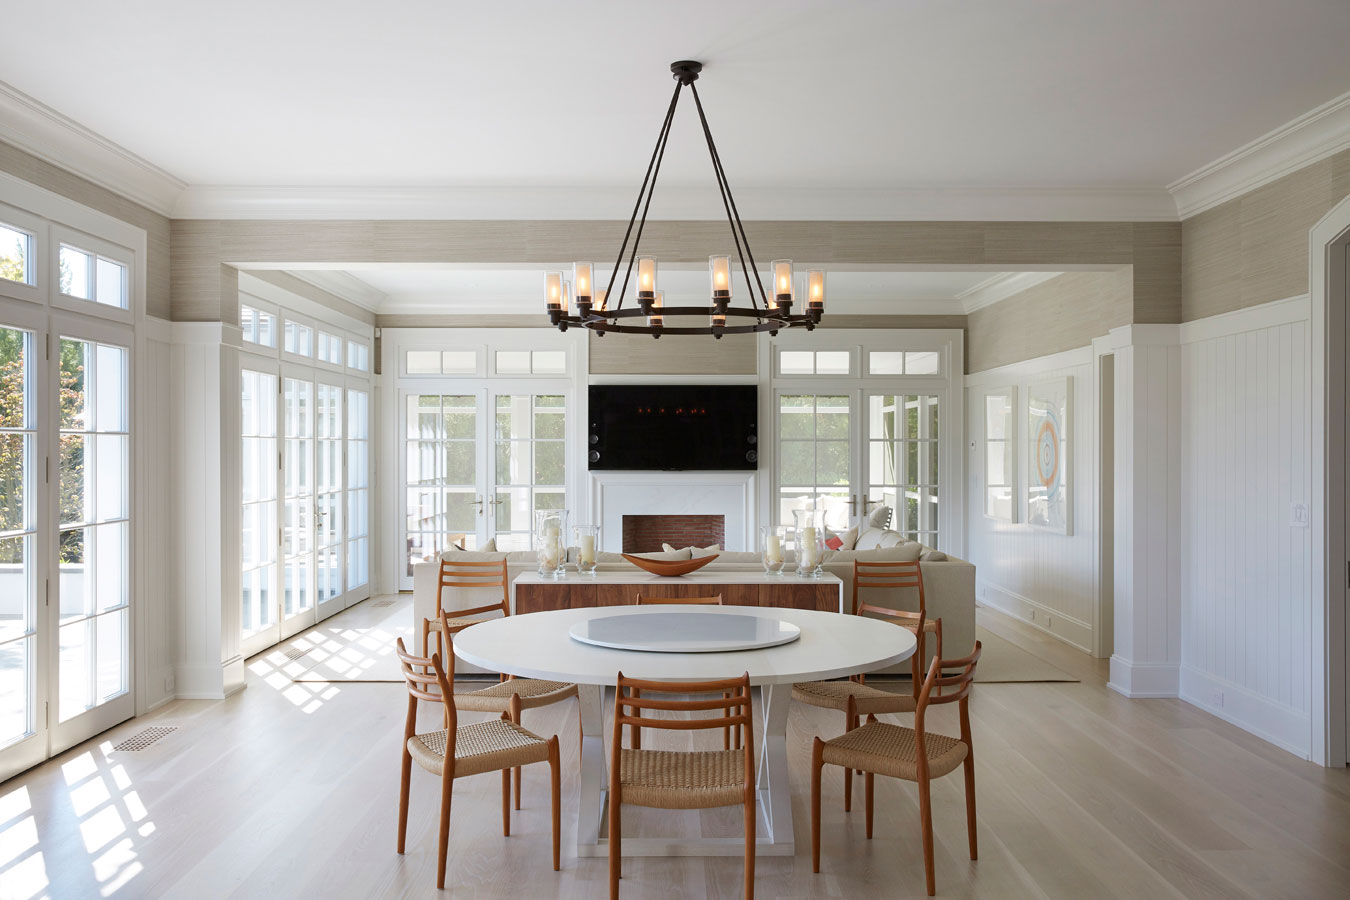 Residential Project - ZOH Architects - Zwirko, Ortmann & Hugo Architects P.C. East Hampton NY